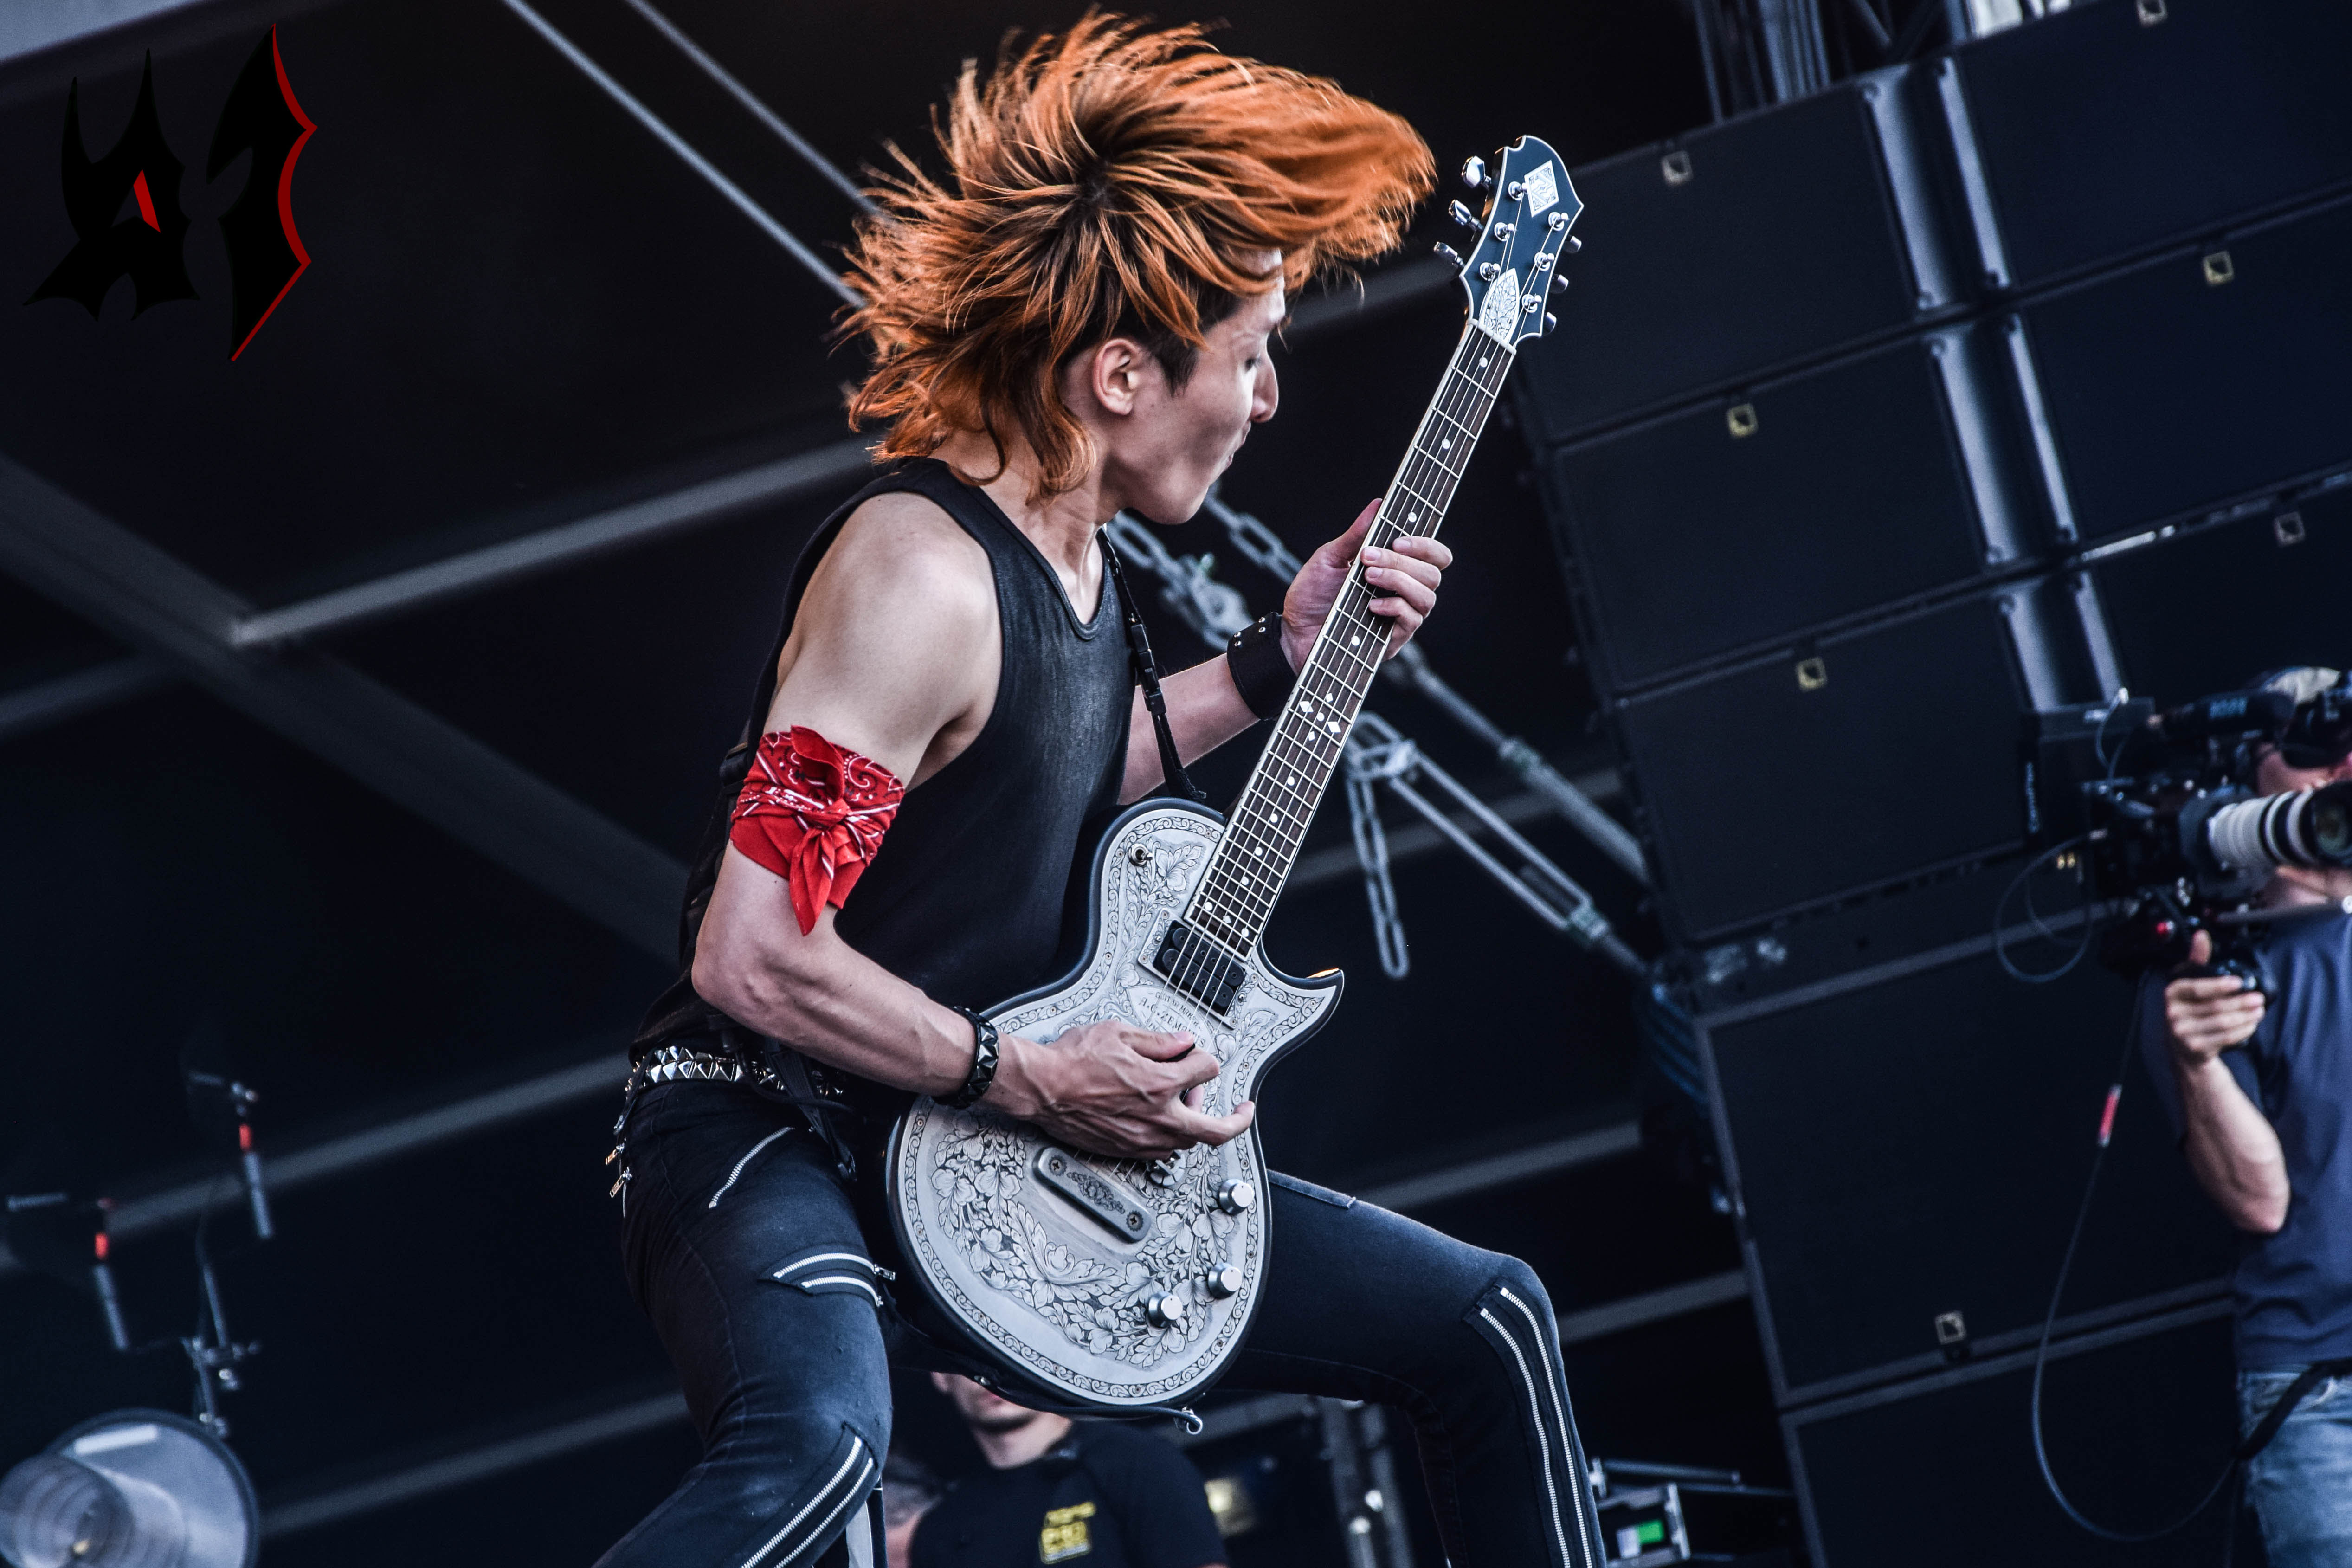 Donwload 2018 – Day 2 - Crossfaith 25